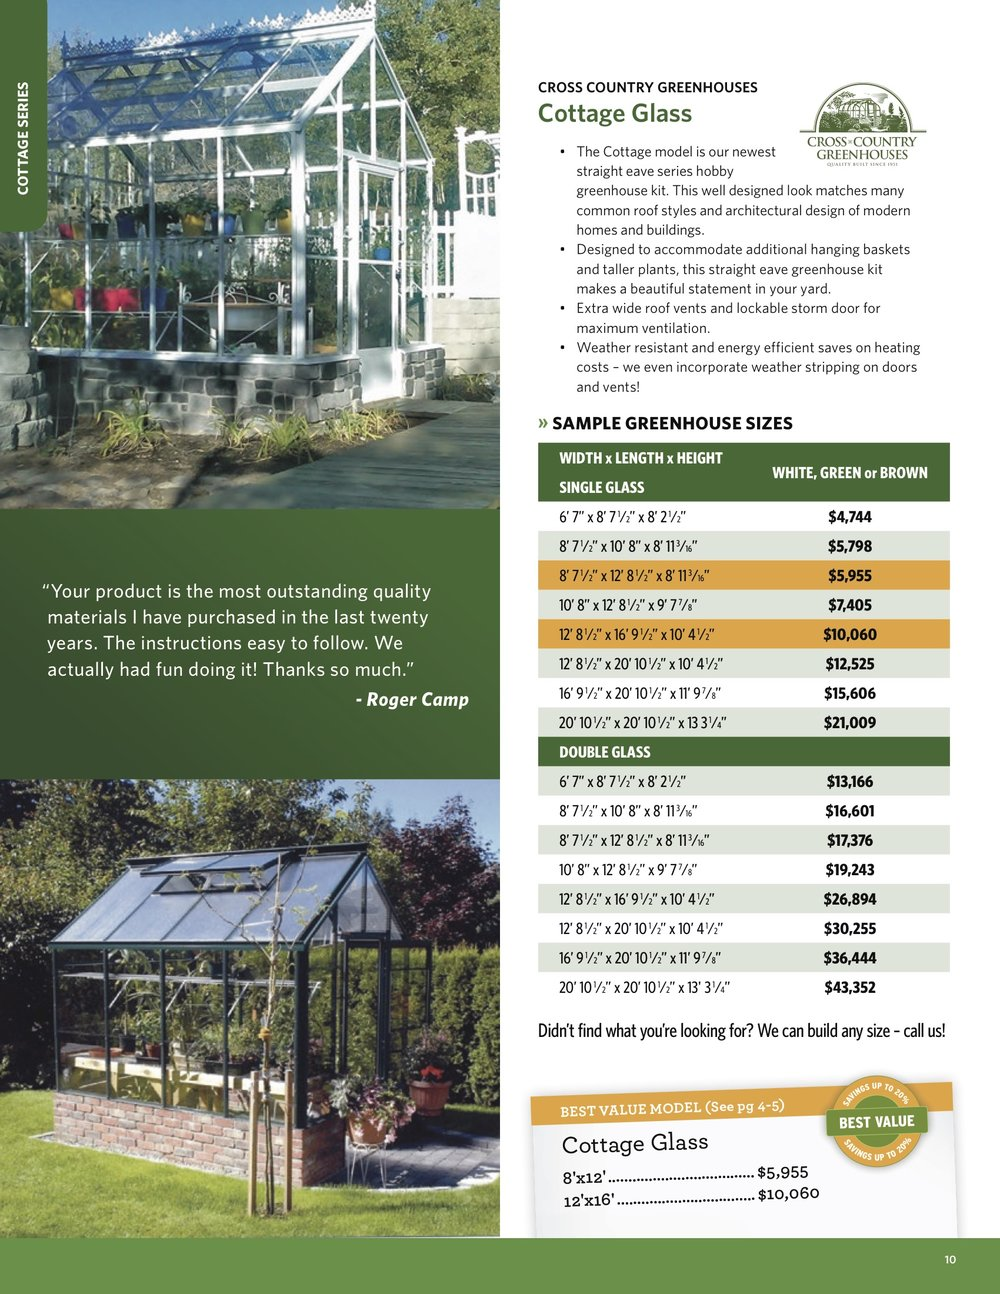 111552_Wisconsin Greenhouse Company_National Catalog (4) (dragged) 9.jpeg